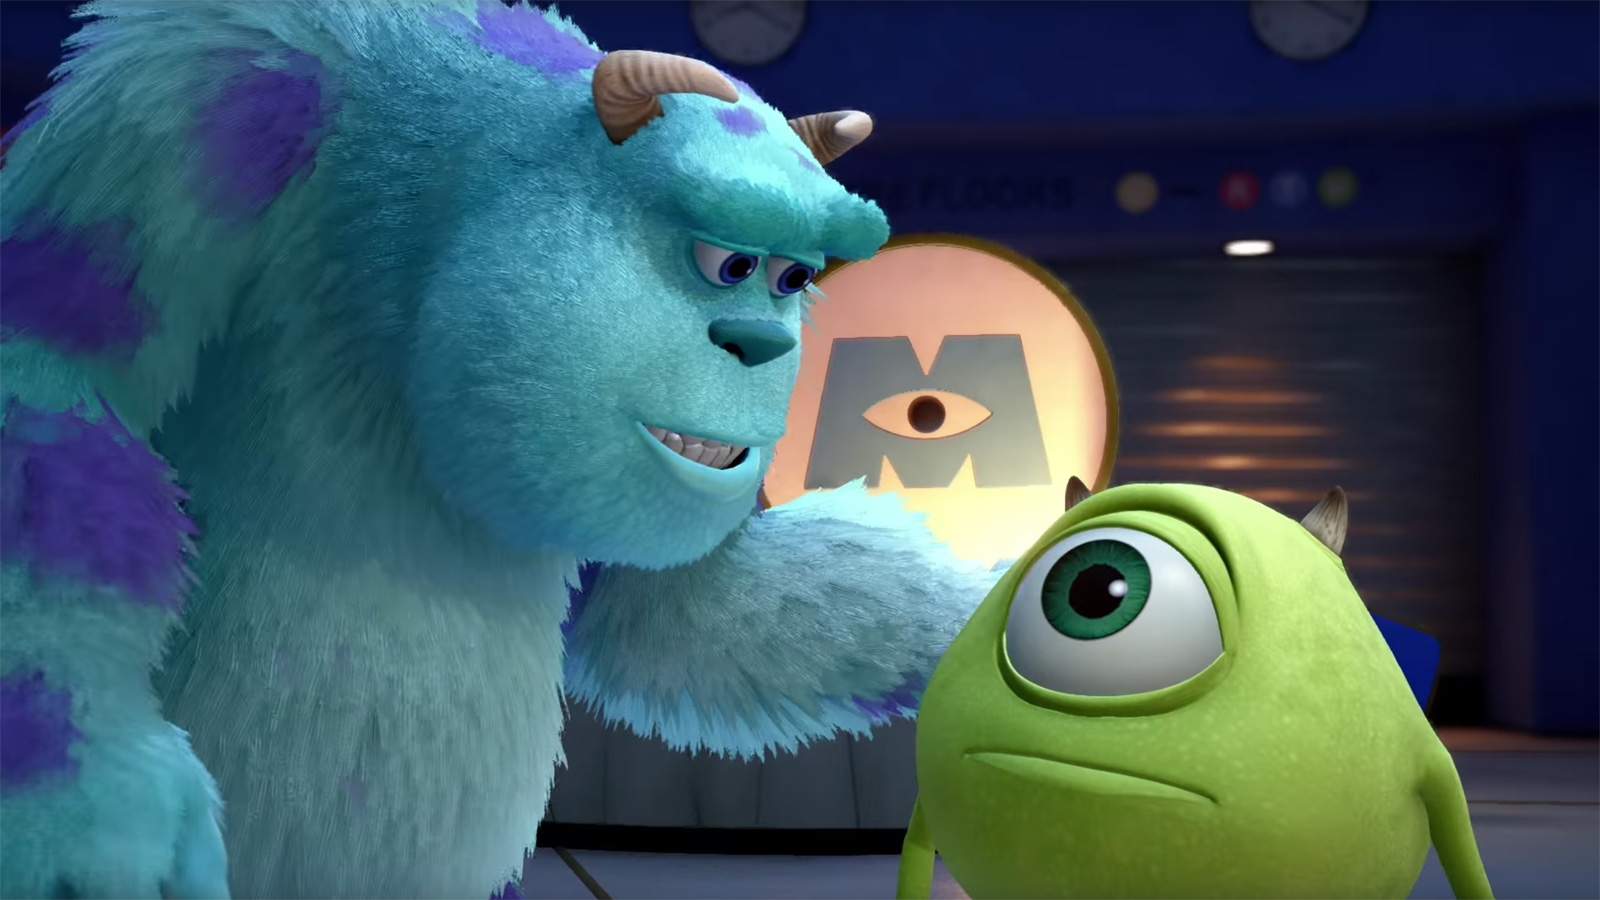 'Monsters Inc' is the next Pixar world coming to 'Kingdom Hearts 3' | DeviceDaily.com